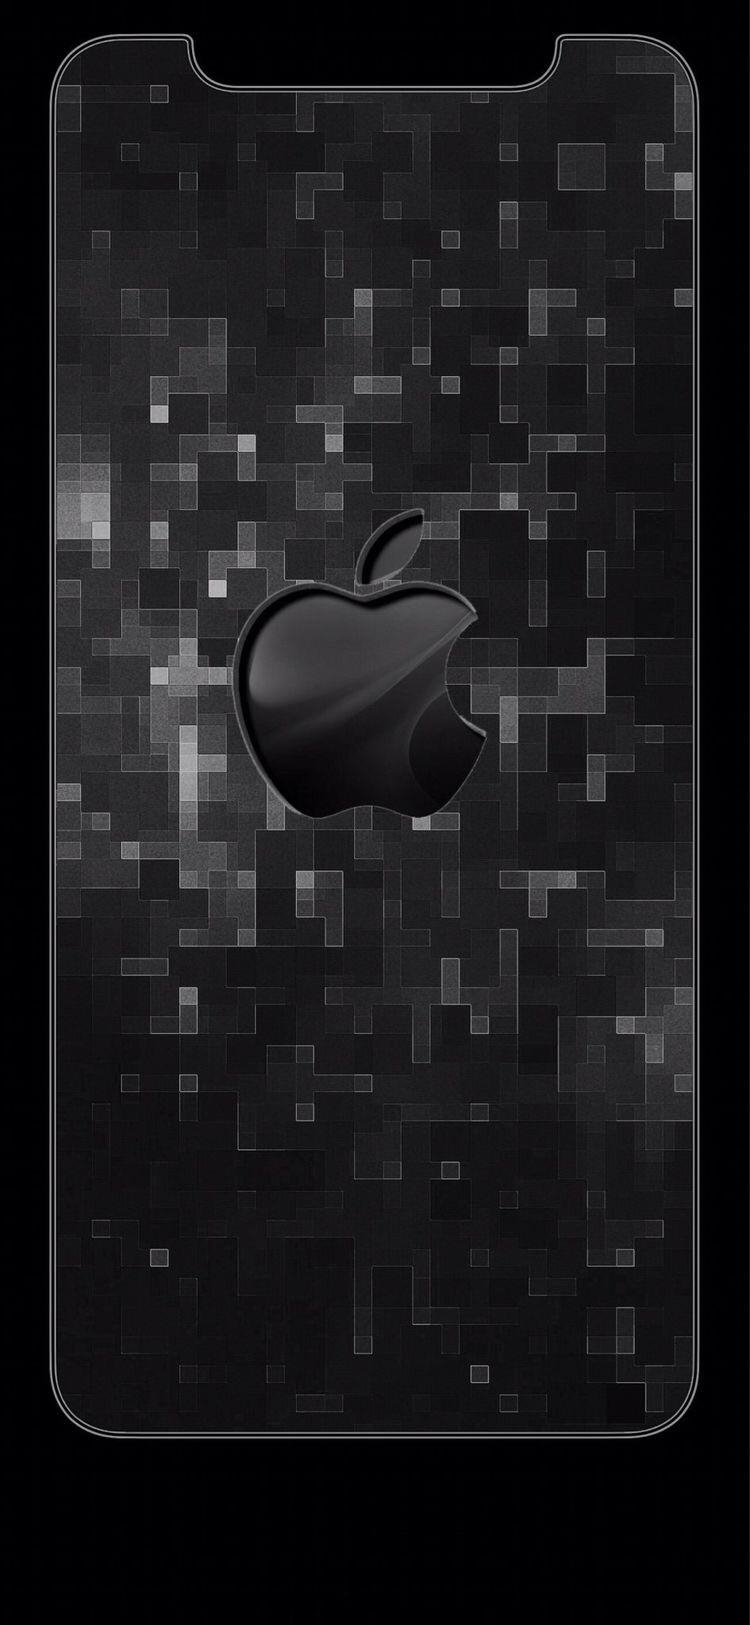 Black Apple iPhone X Wallpapers iPhone X Wallpapers HD